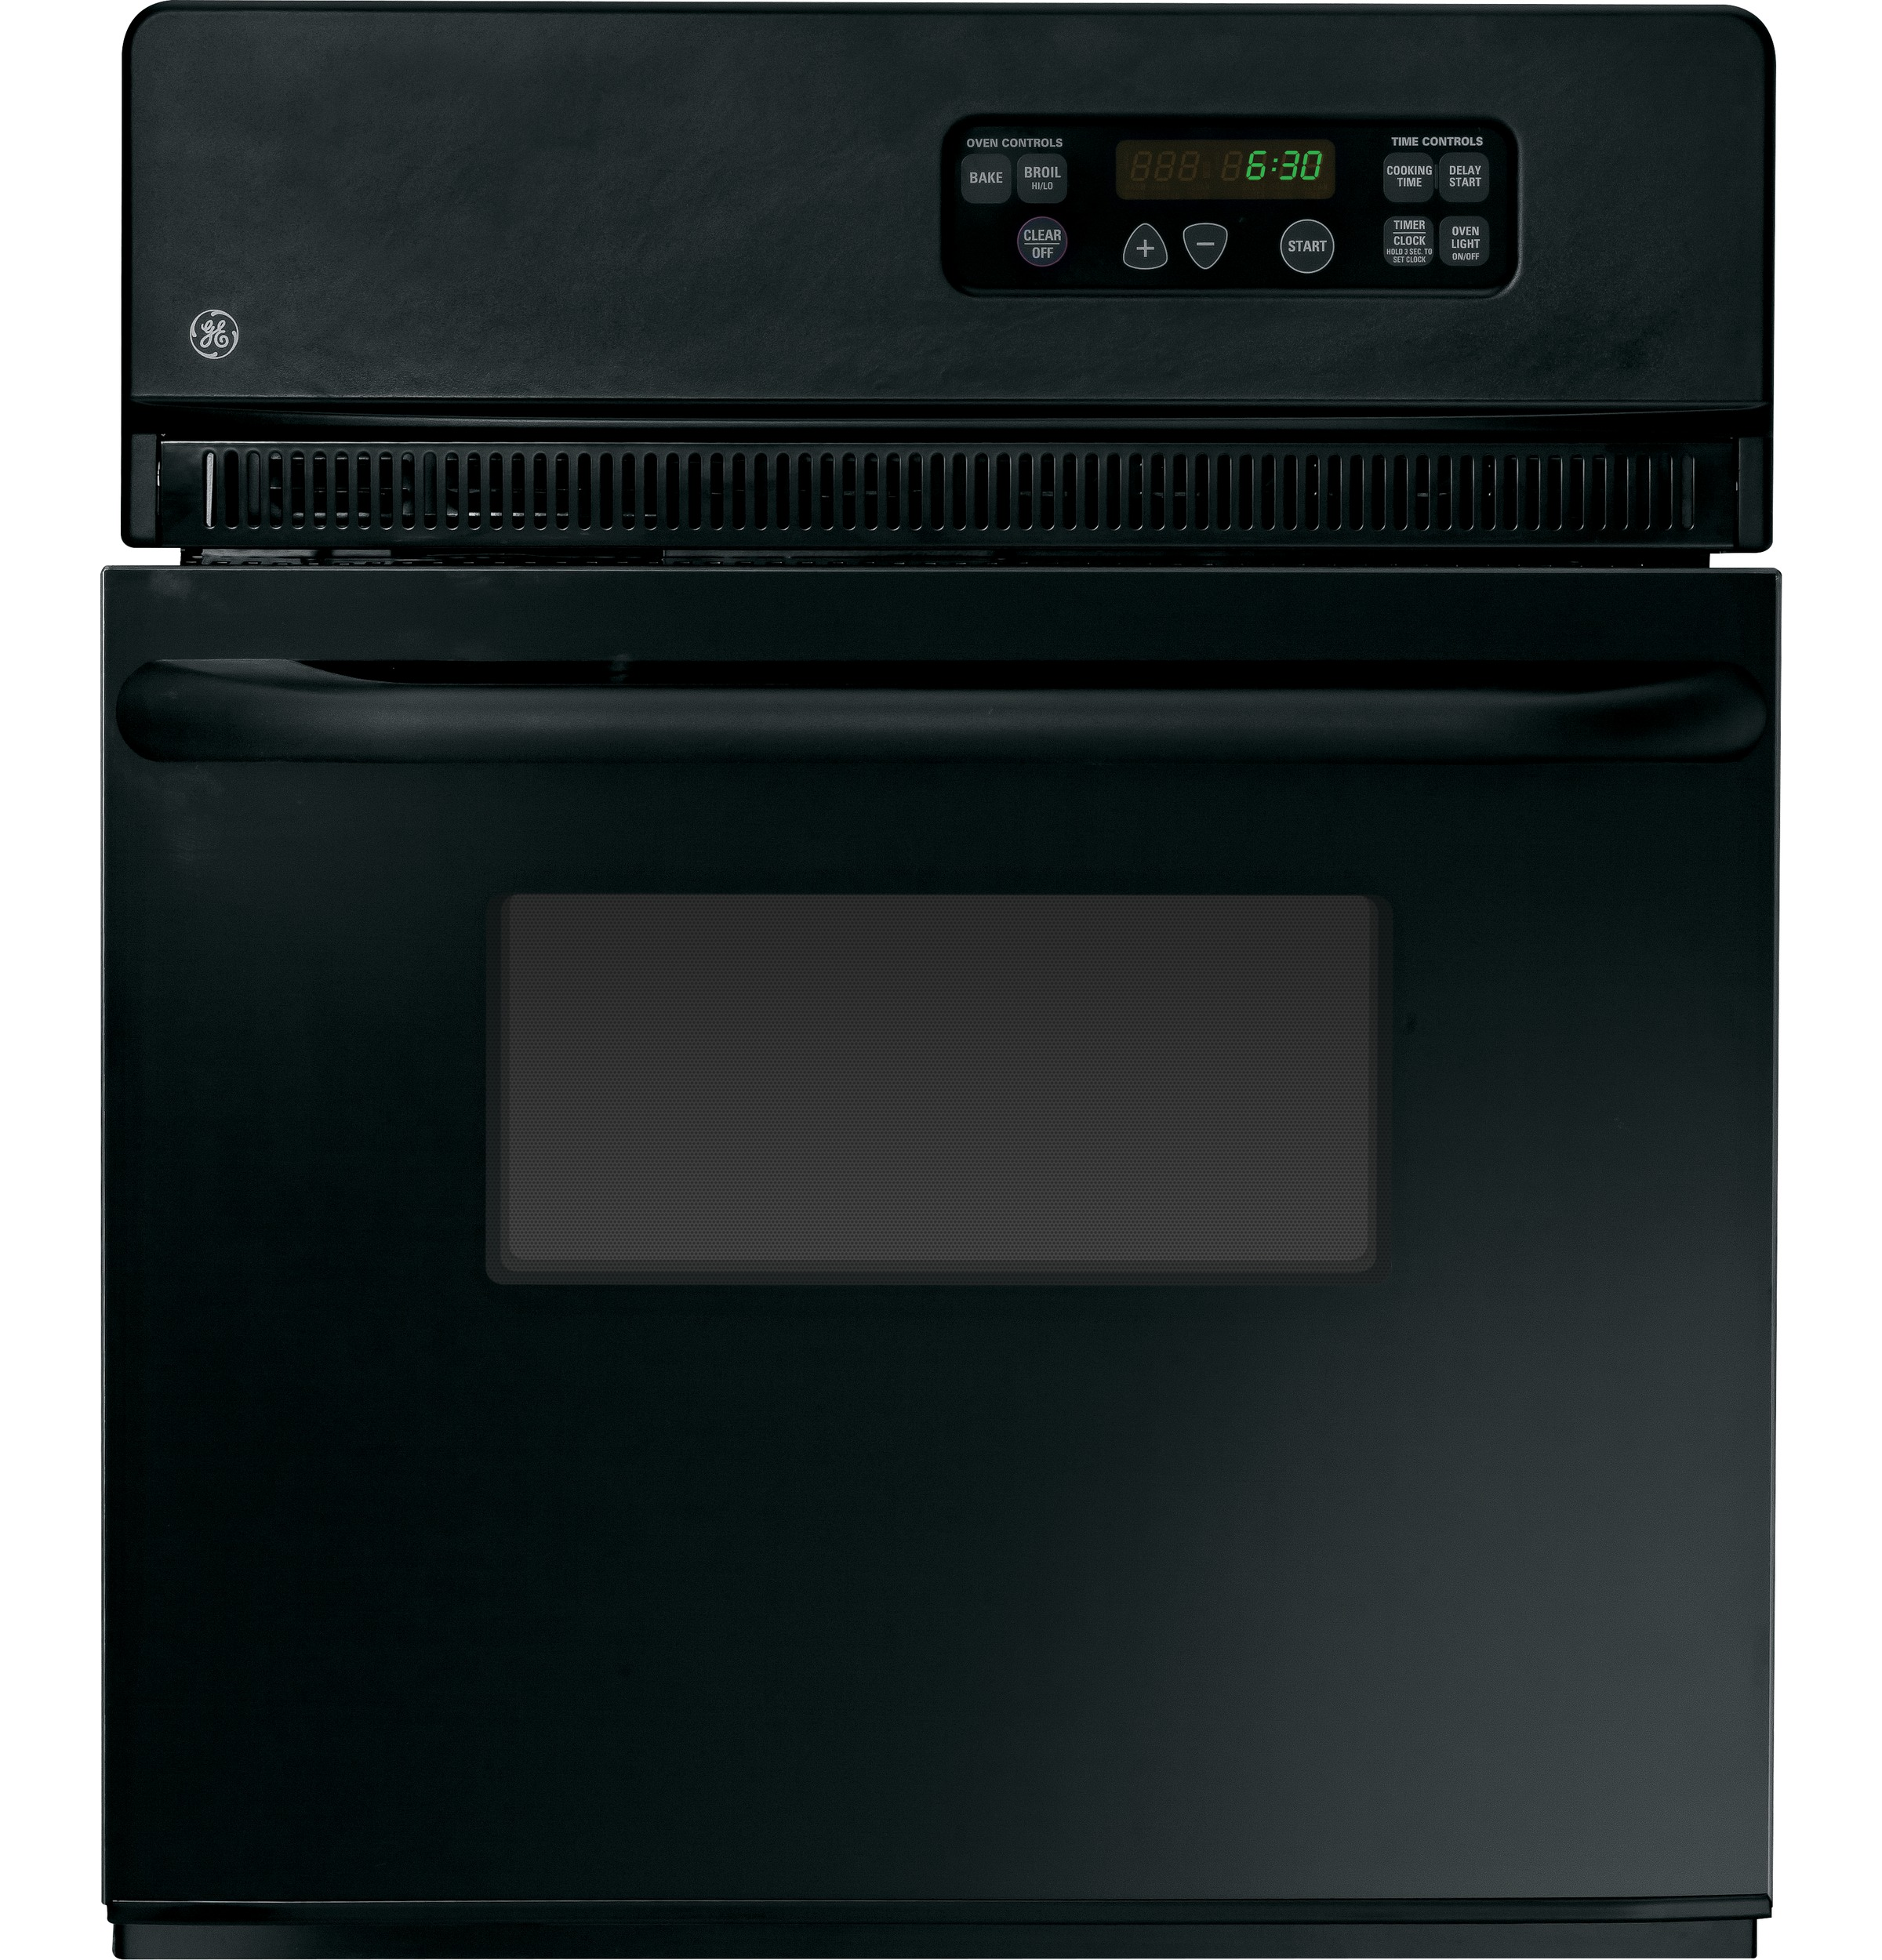 Ge 24 electric single standard clean wall oven jrs06bjbb ge product image publicscrutiny Gallery